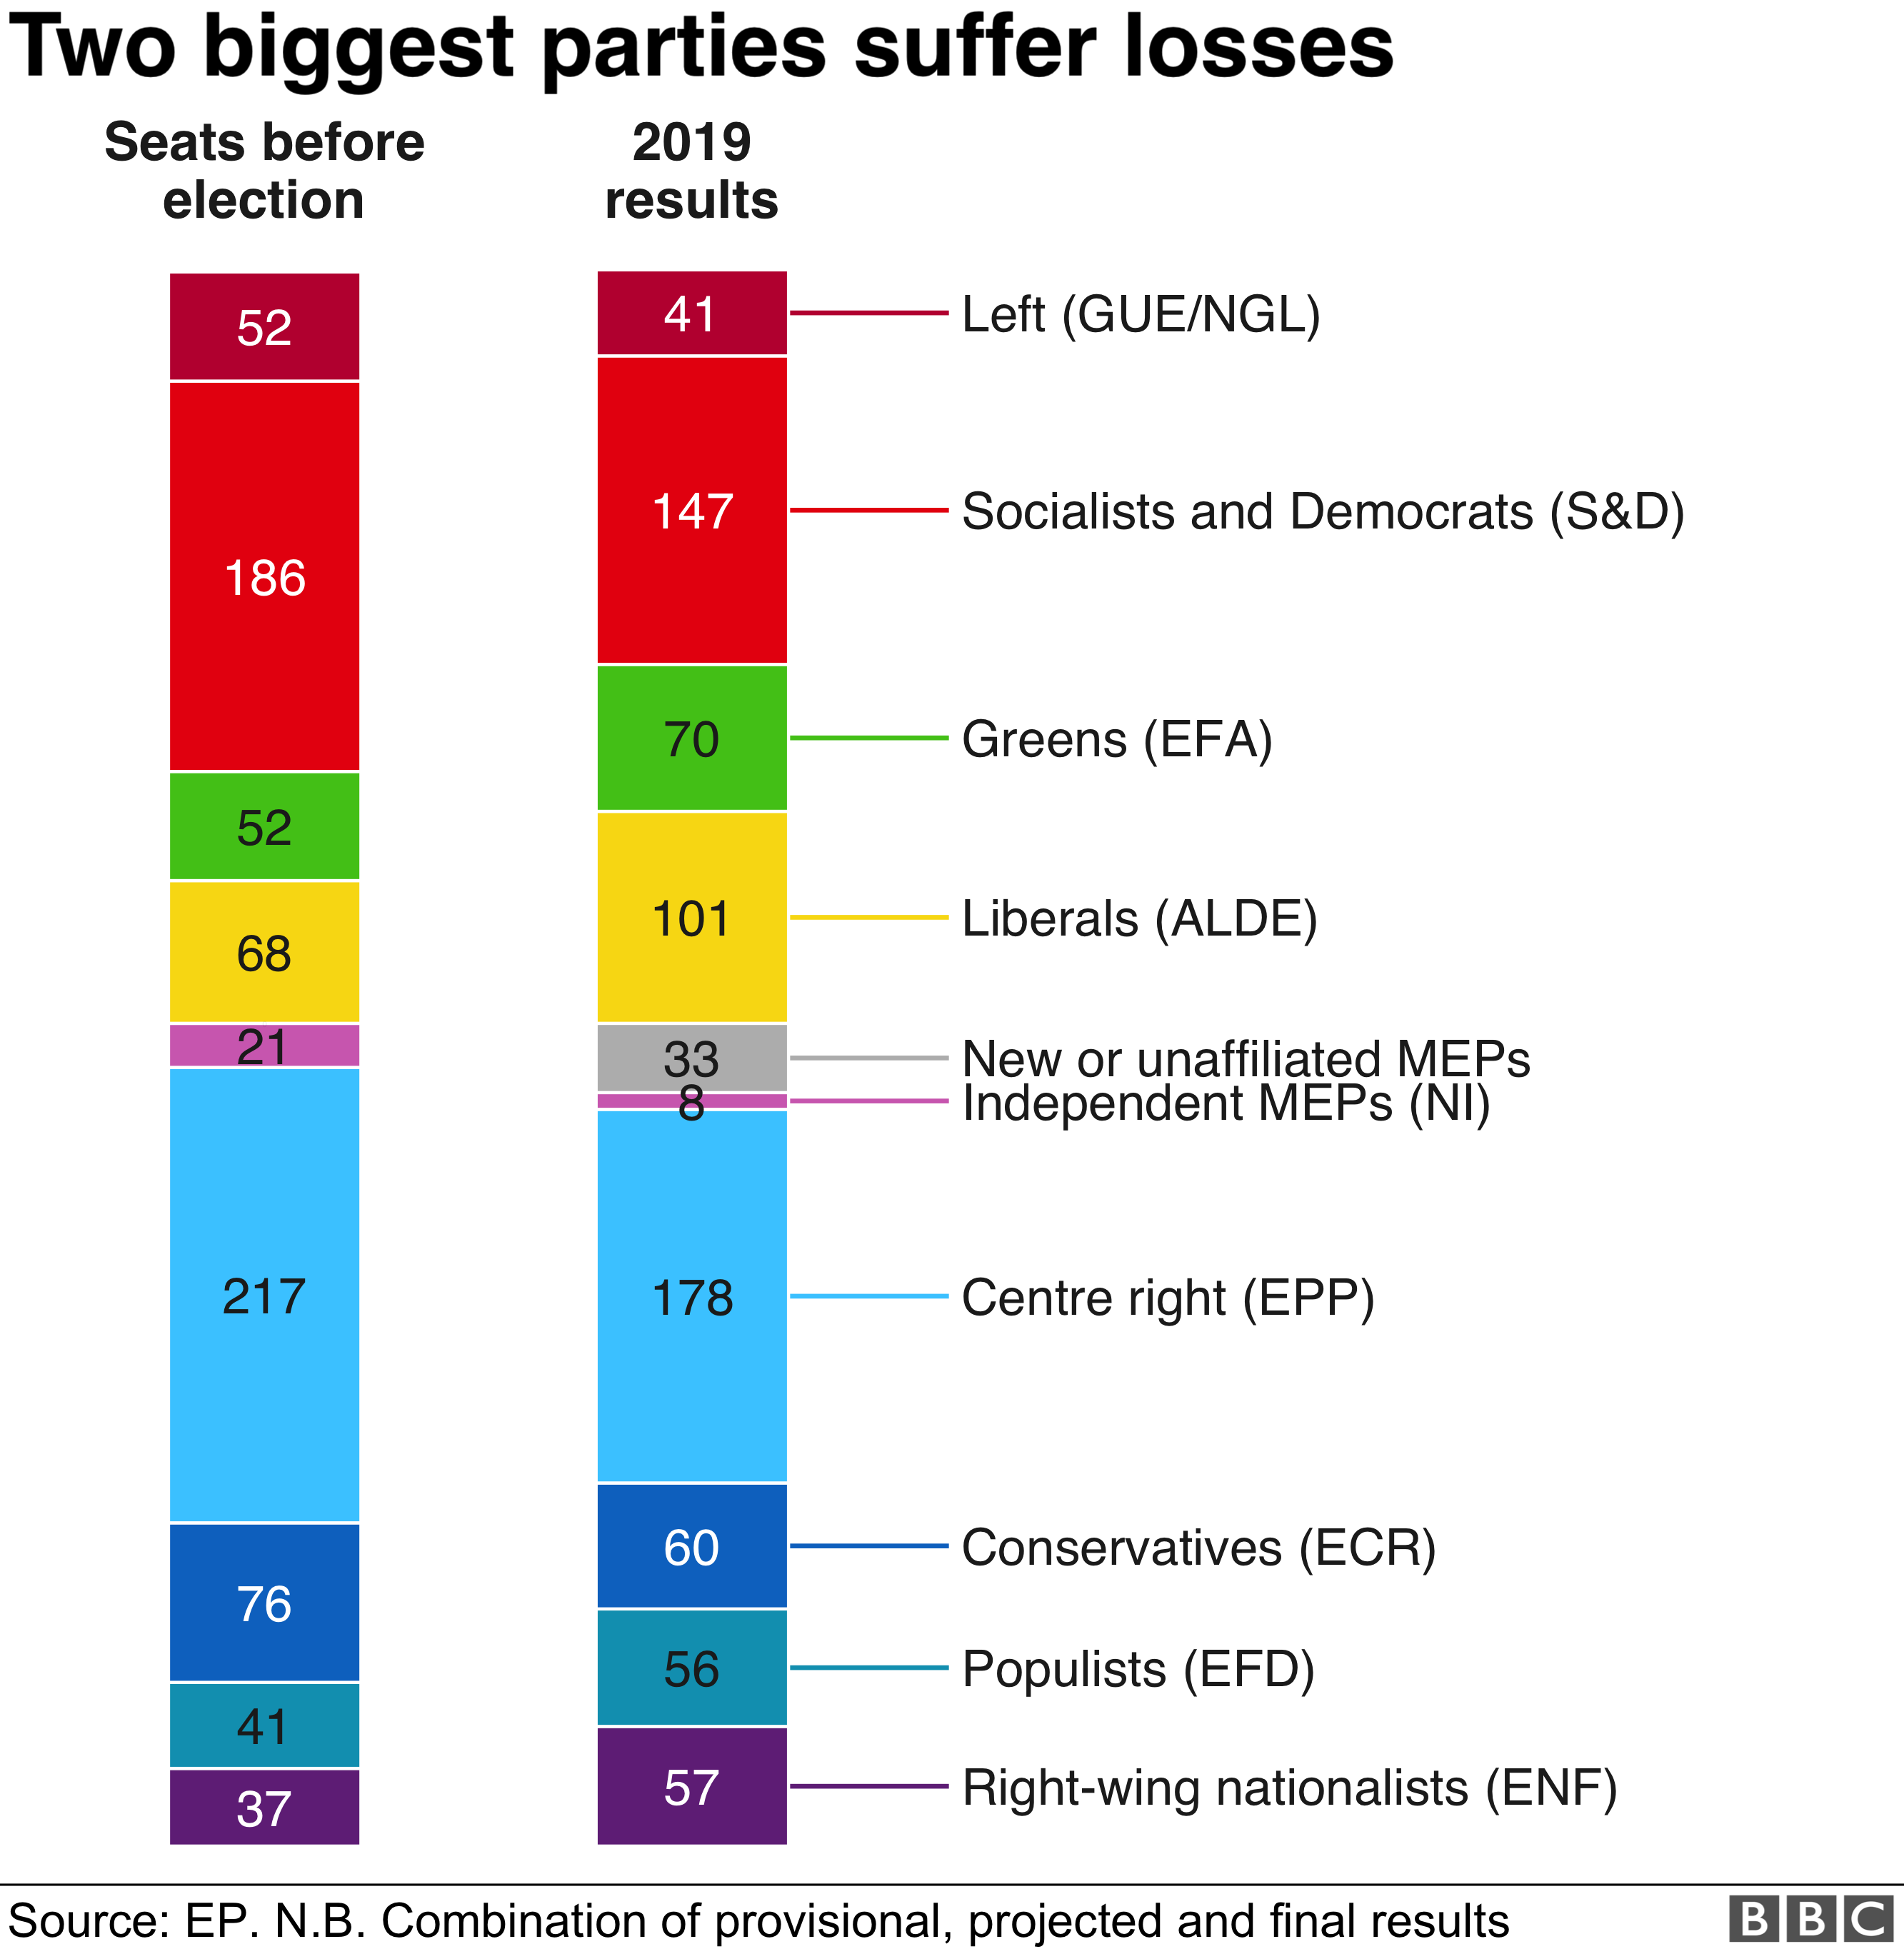 Both main parties suffer significant losses